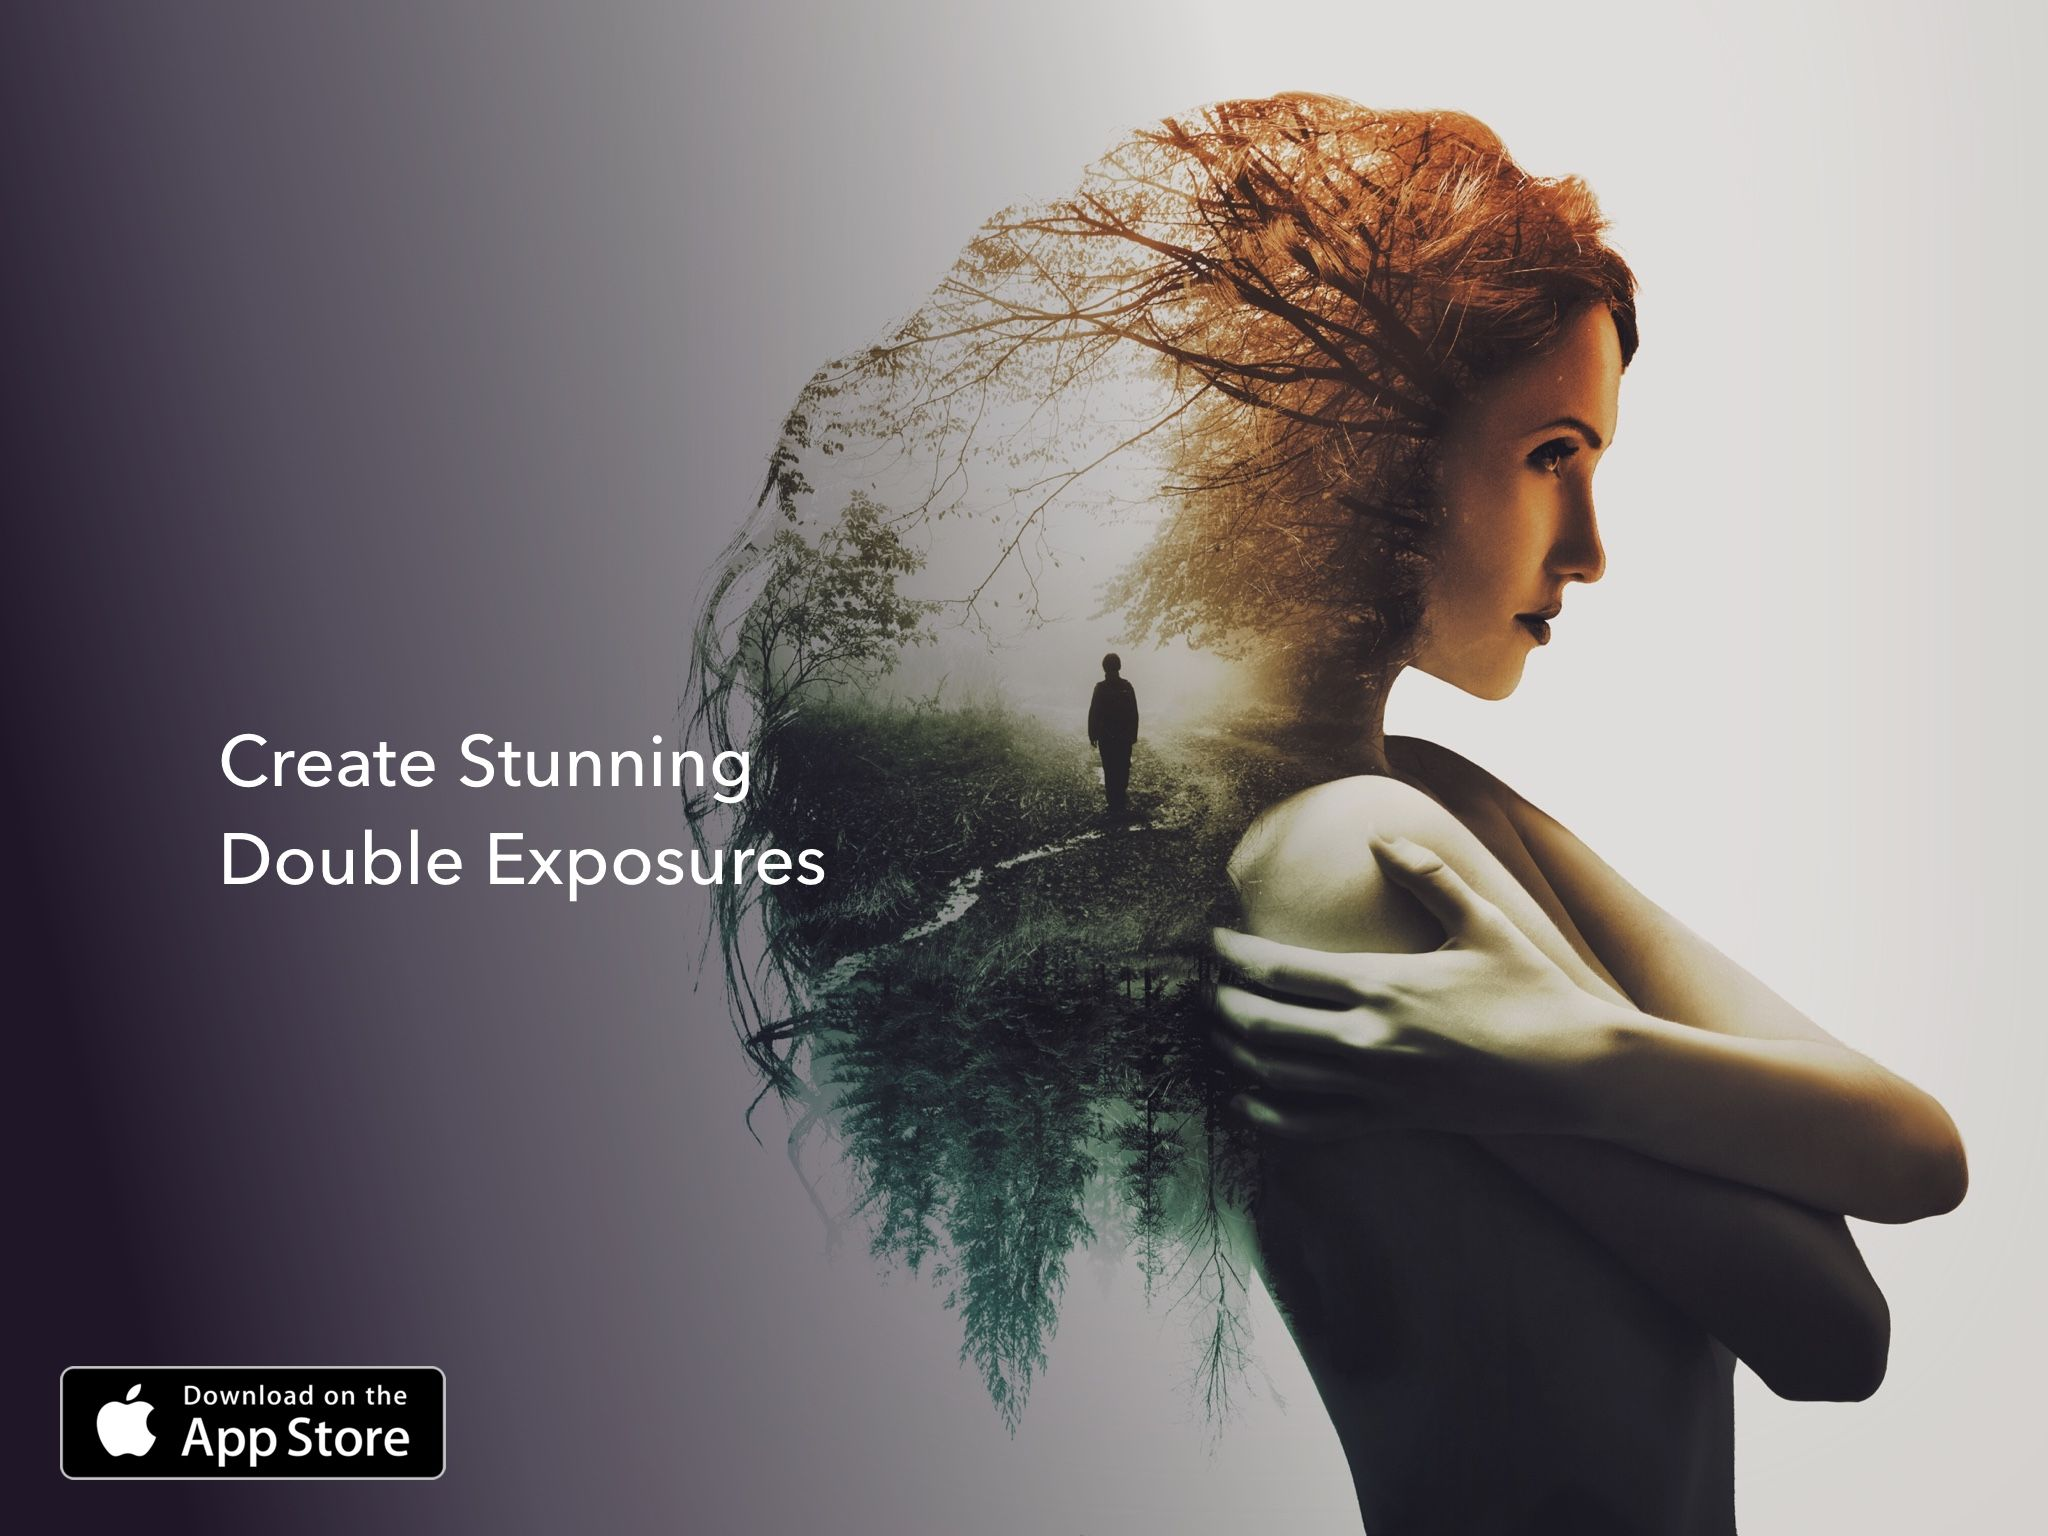 Make The Most Of Your Iphone Double Exposure Photo Editing Portrait Photography